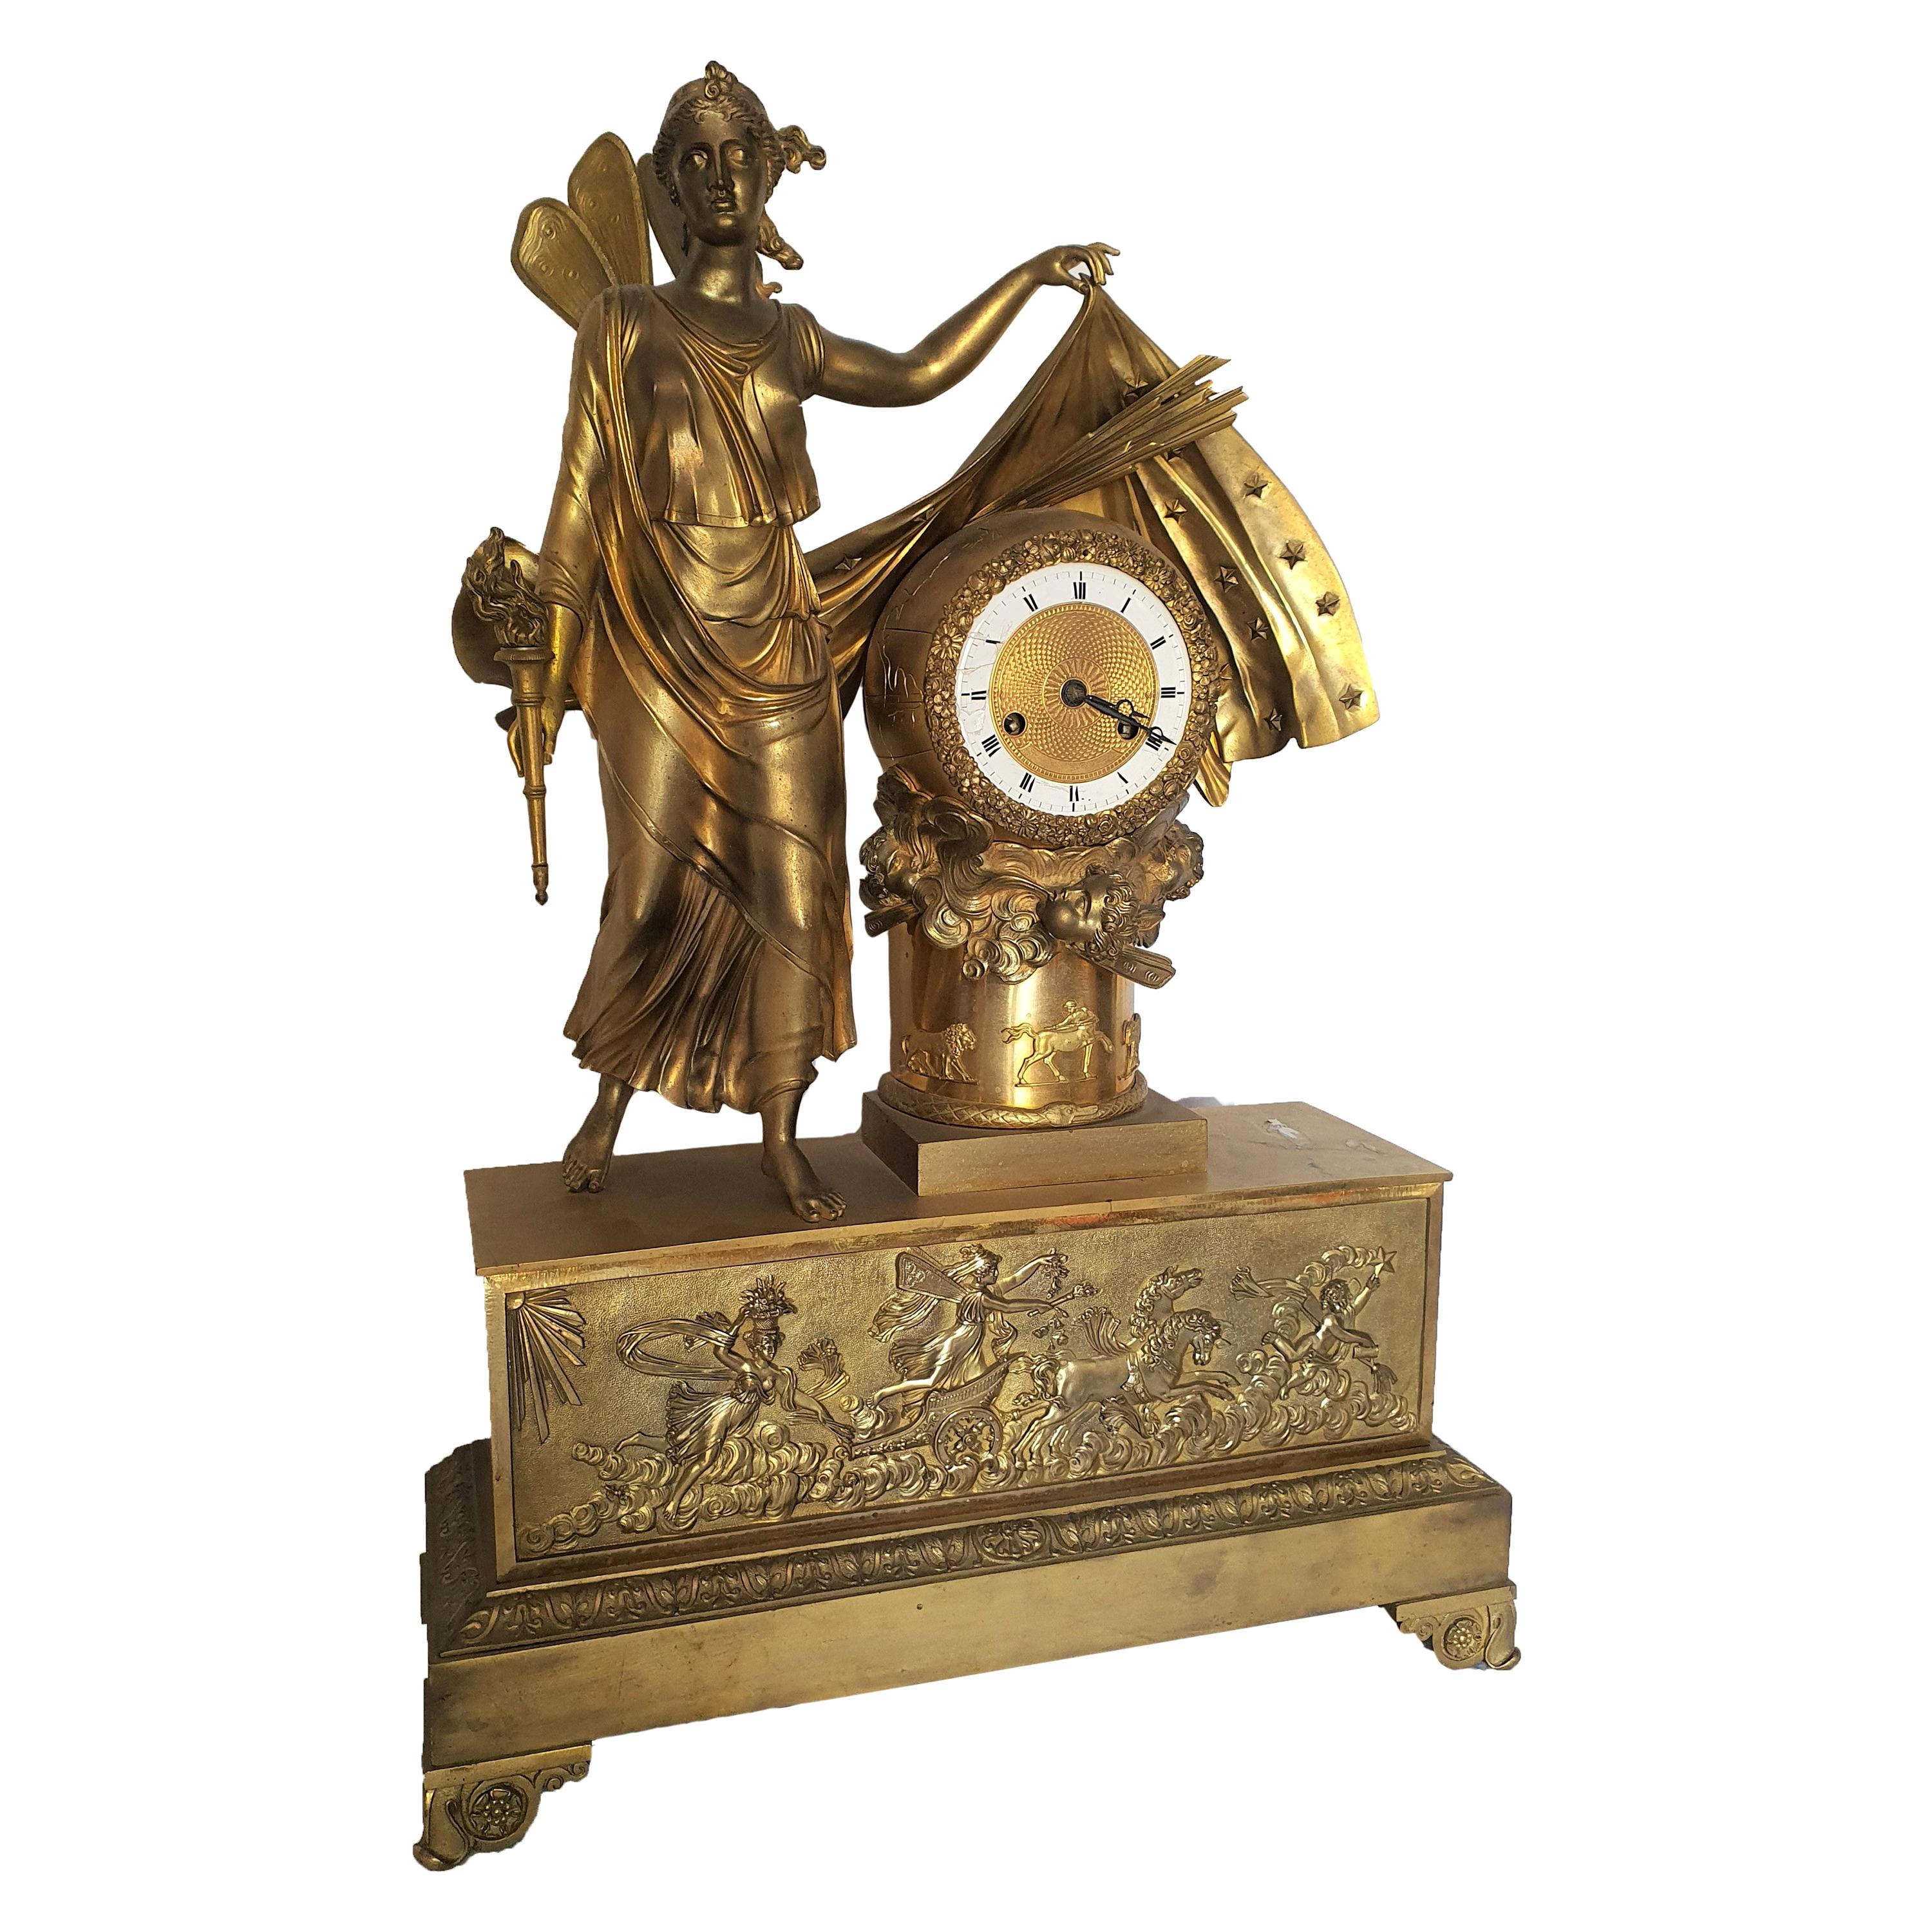 19th Century French Clock in Finely Chiseled and Gilded Bronze